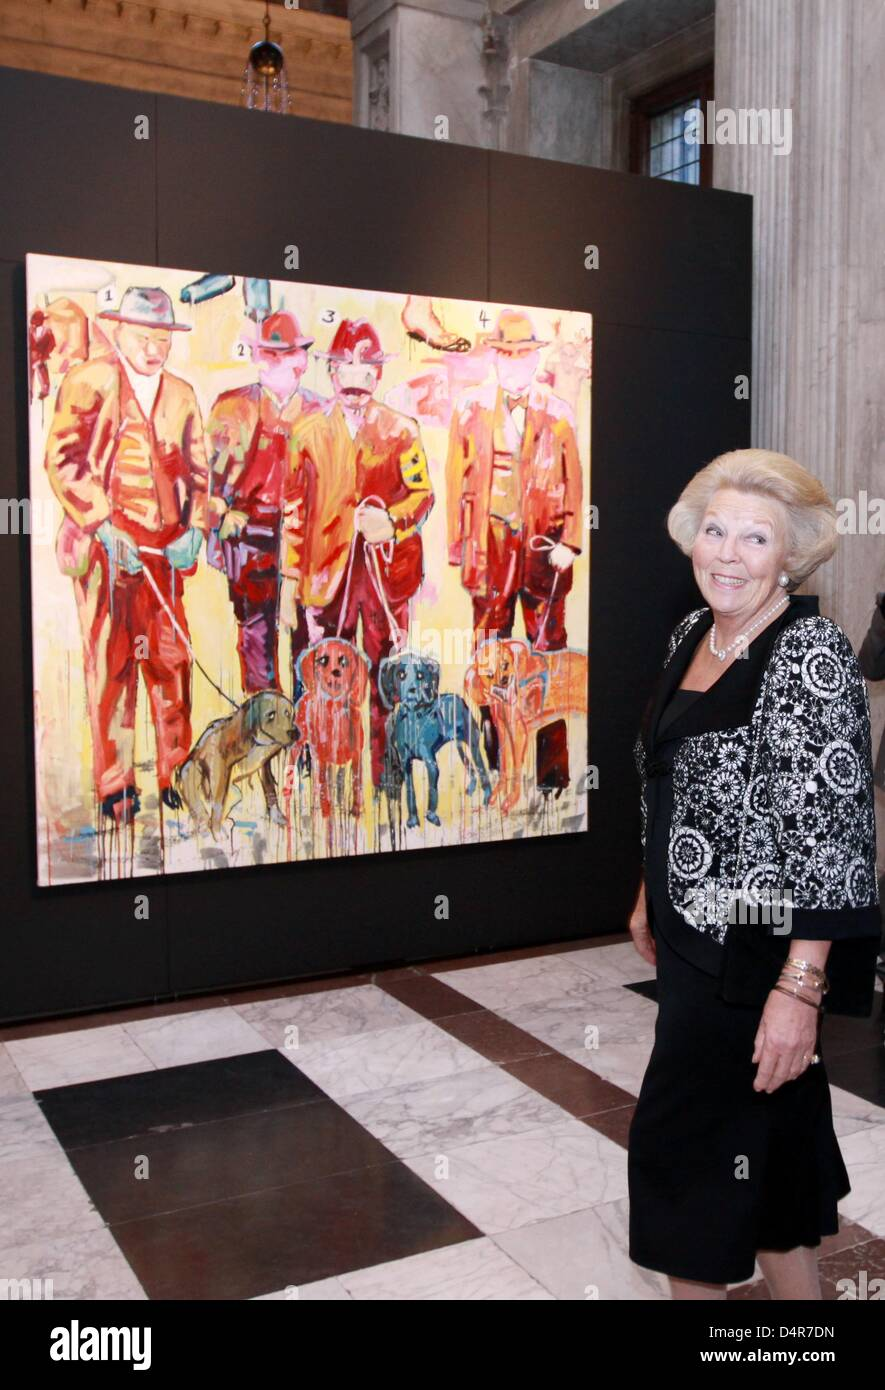 Queen Beatrix of the Netherlands smiles in front of the painting ?The Hounds? by Royal Awards for Painting 2009 - Stock Image